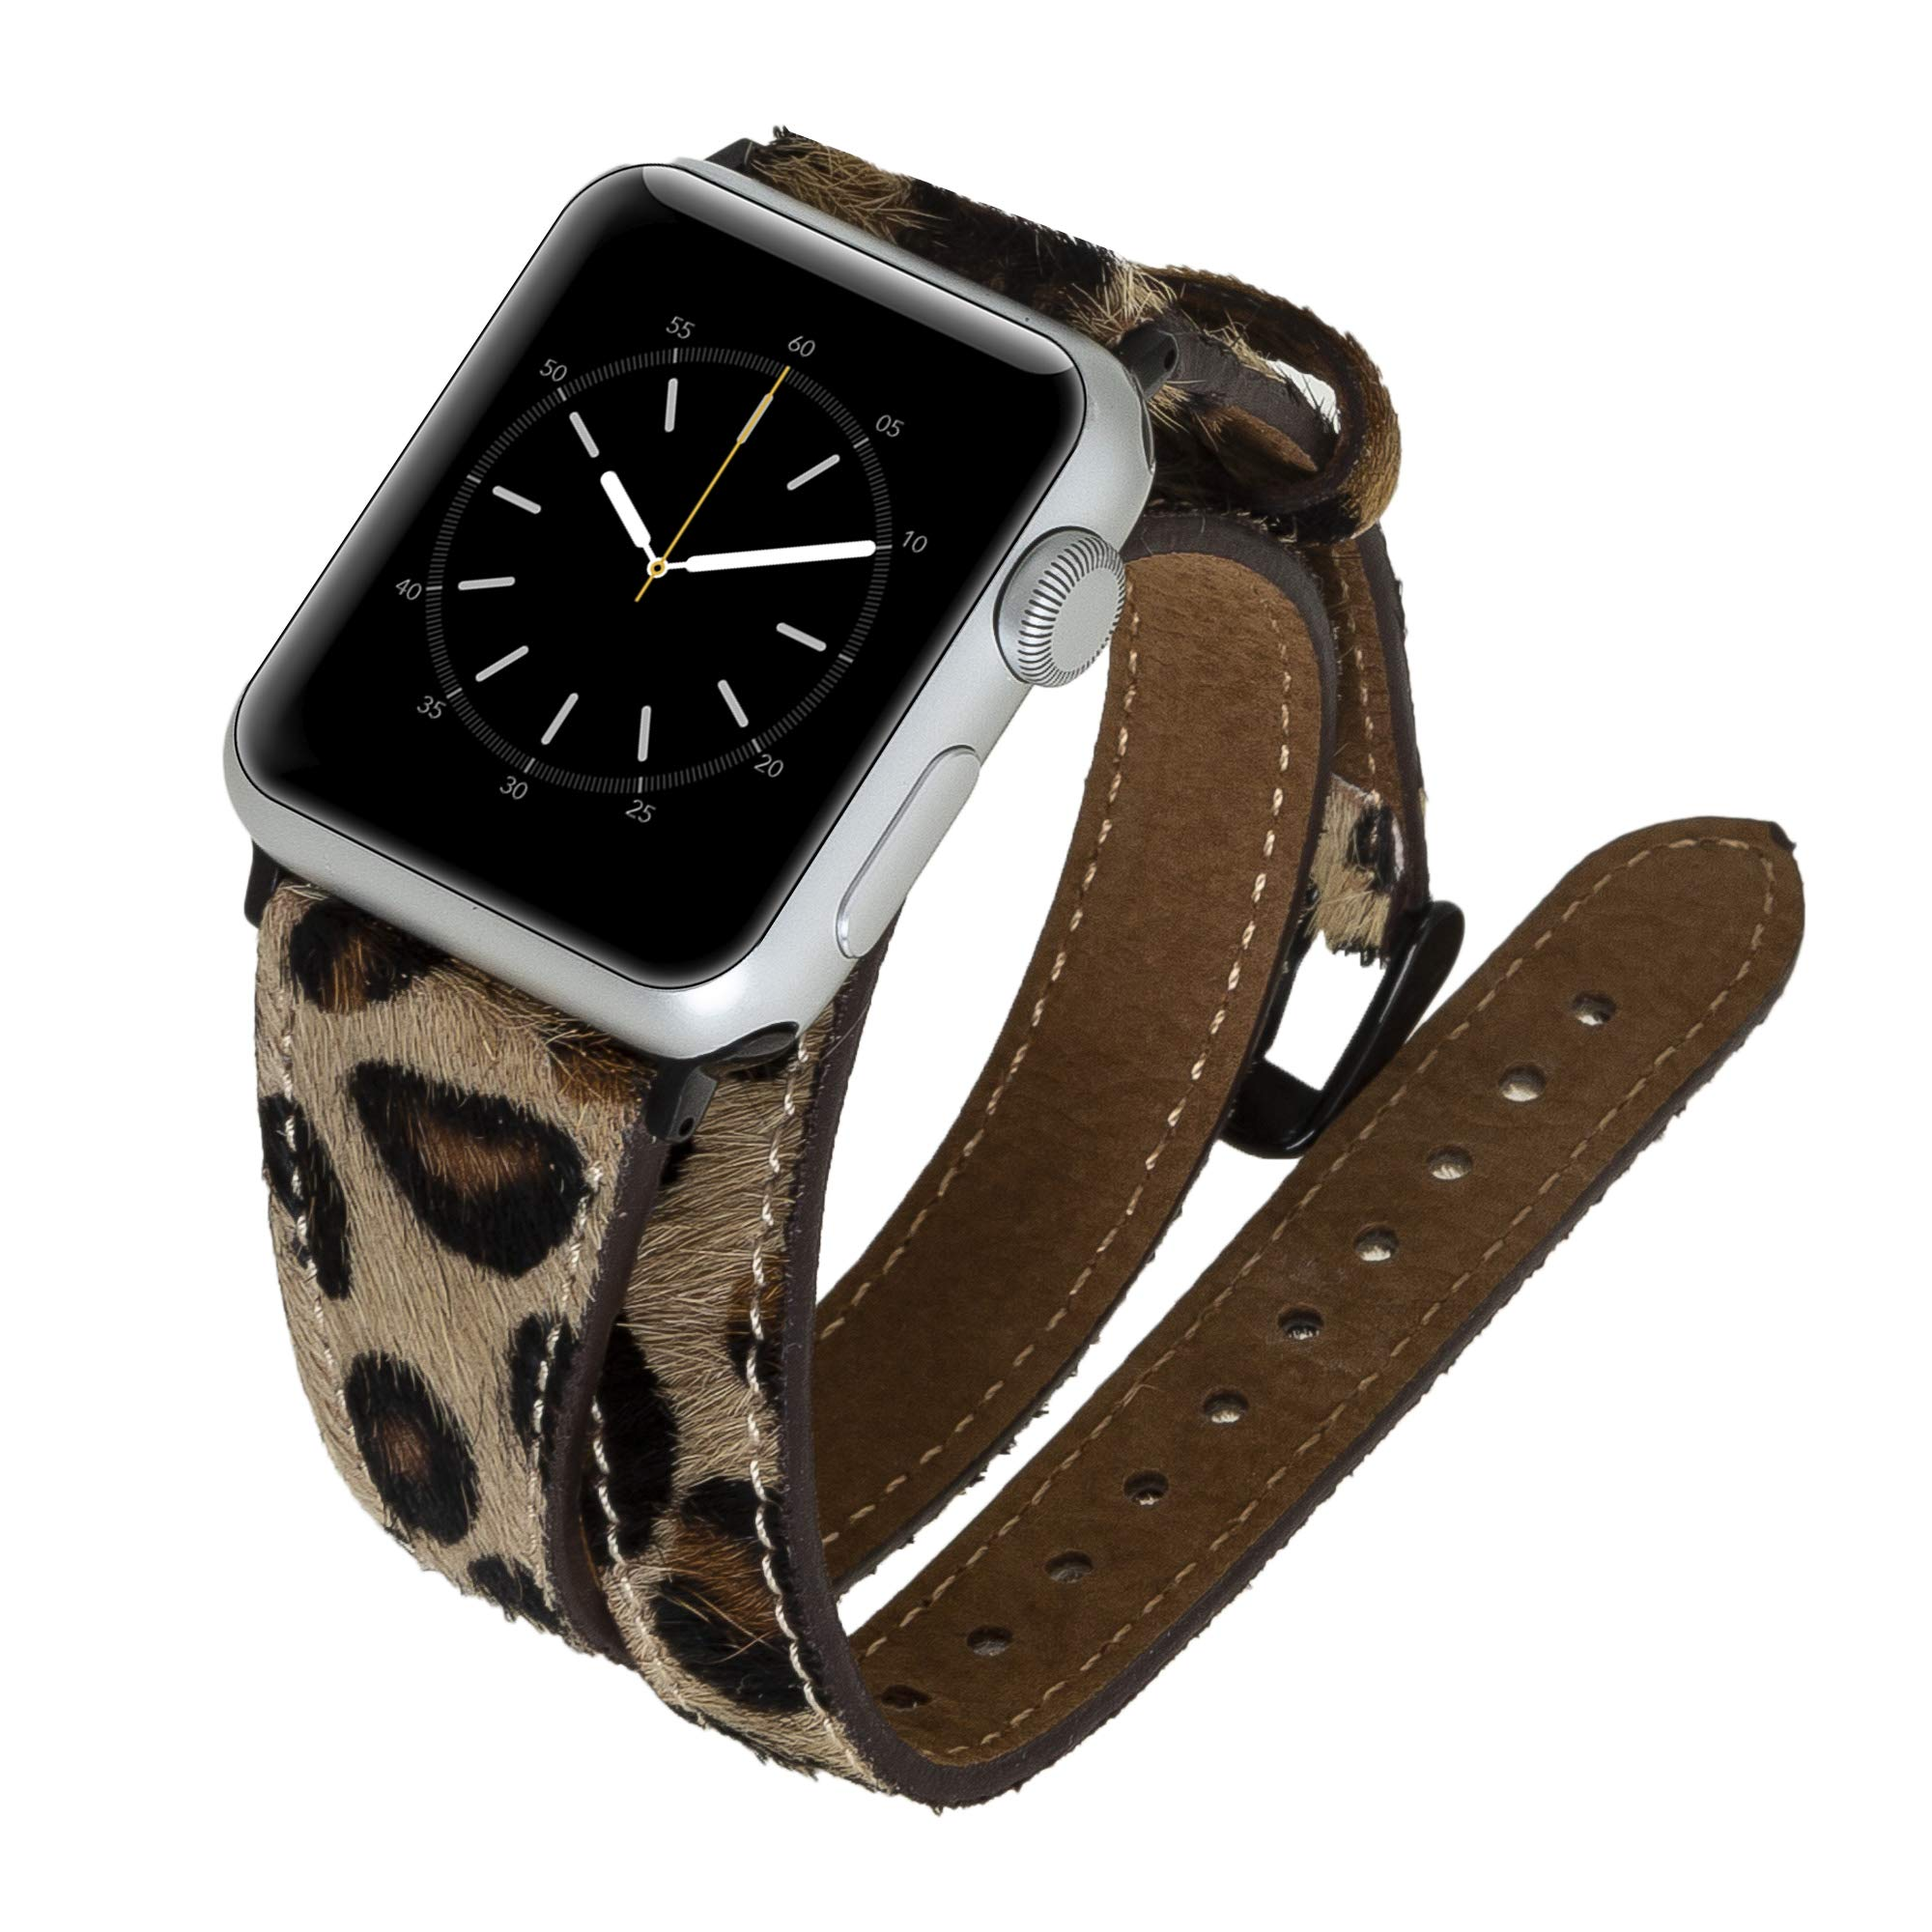 Venito Serena Slim Double Wrap Leather Watch Band Strap Compatible w/Apple Watch iwatch 44/42/40/38mm,Series1,2,3,4 w/Stainless Steel Hardware (Furry Leopard w/Black Connector&Clasp, 38mm-40mm) by Venito